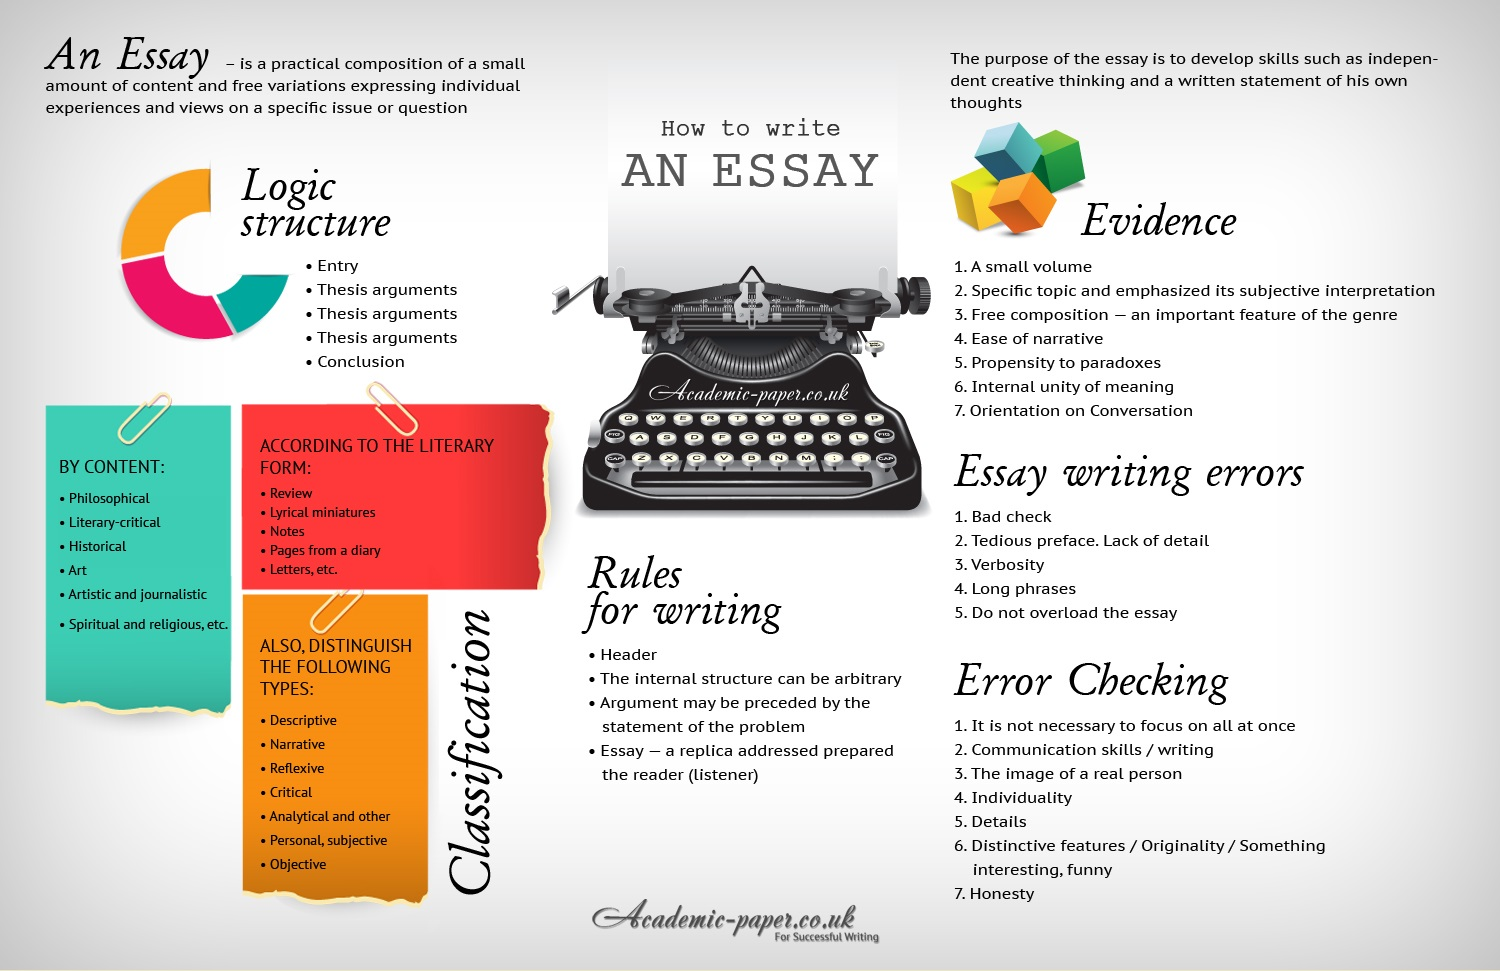 Best essay for you to writers uk